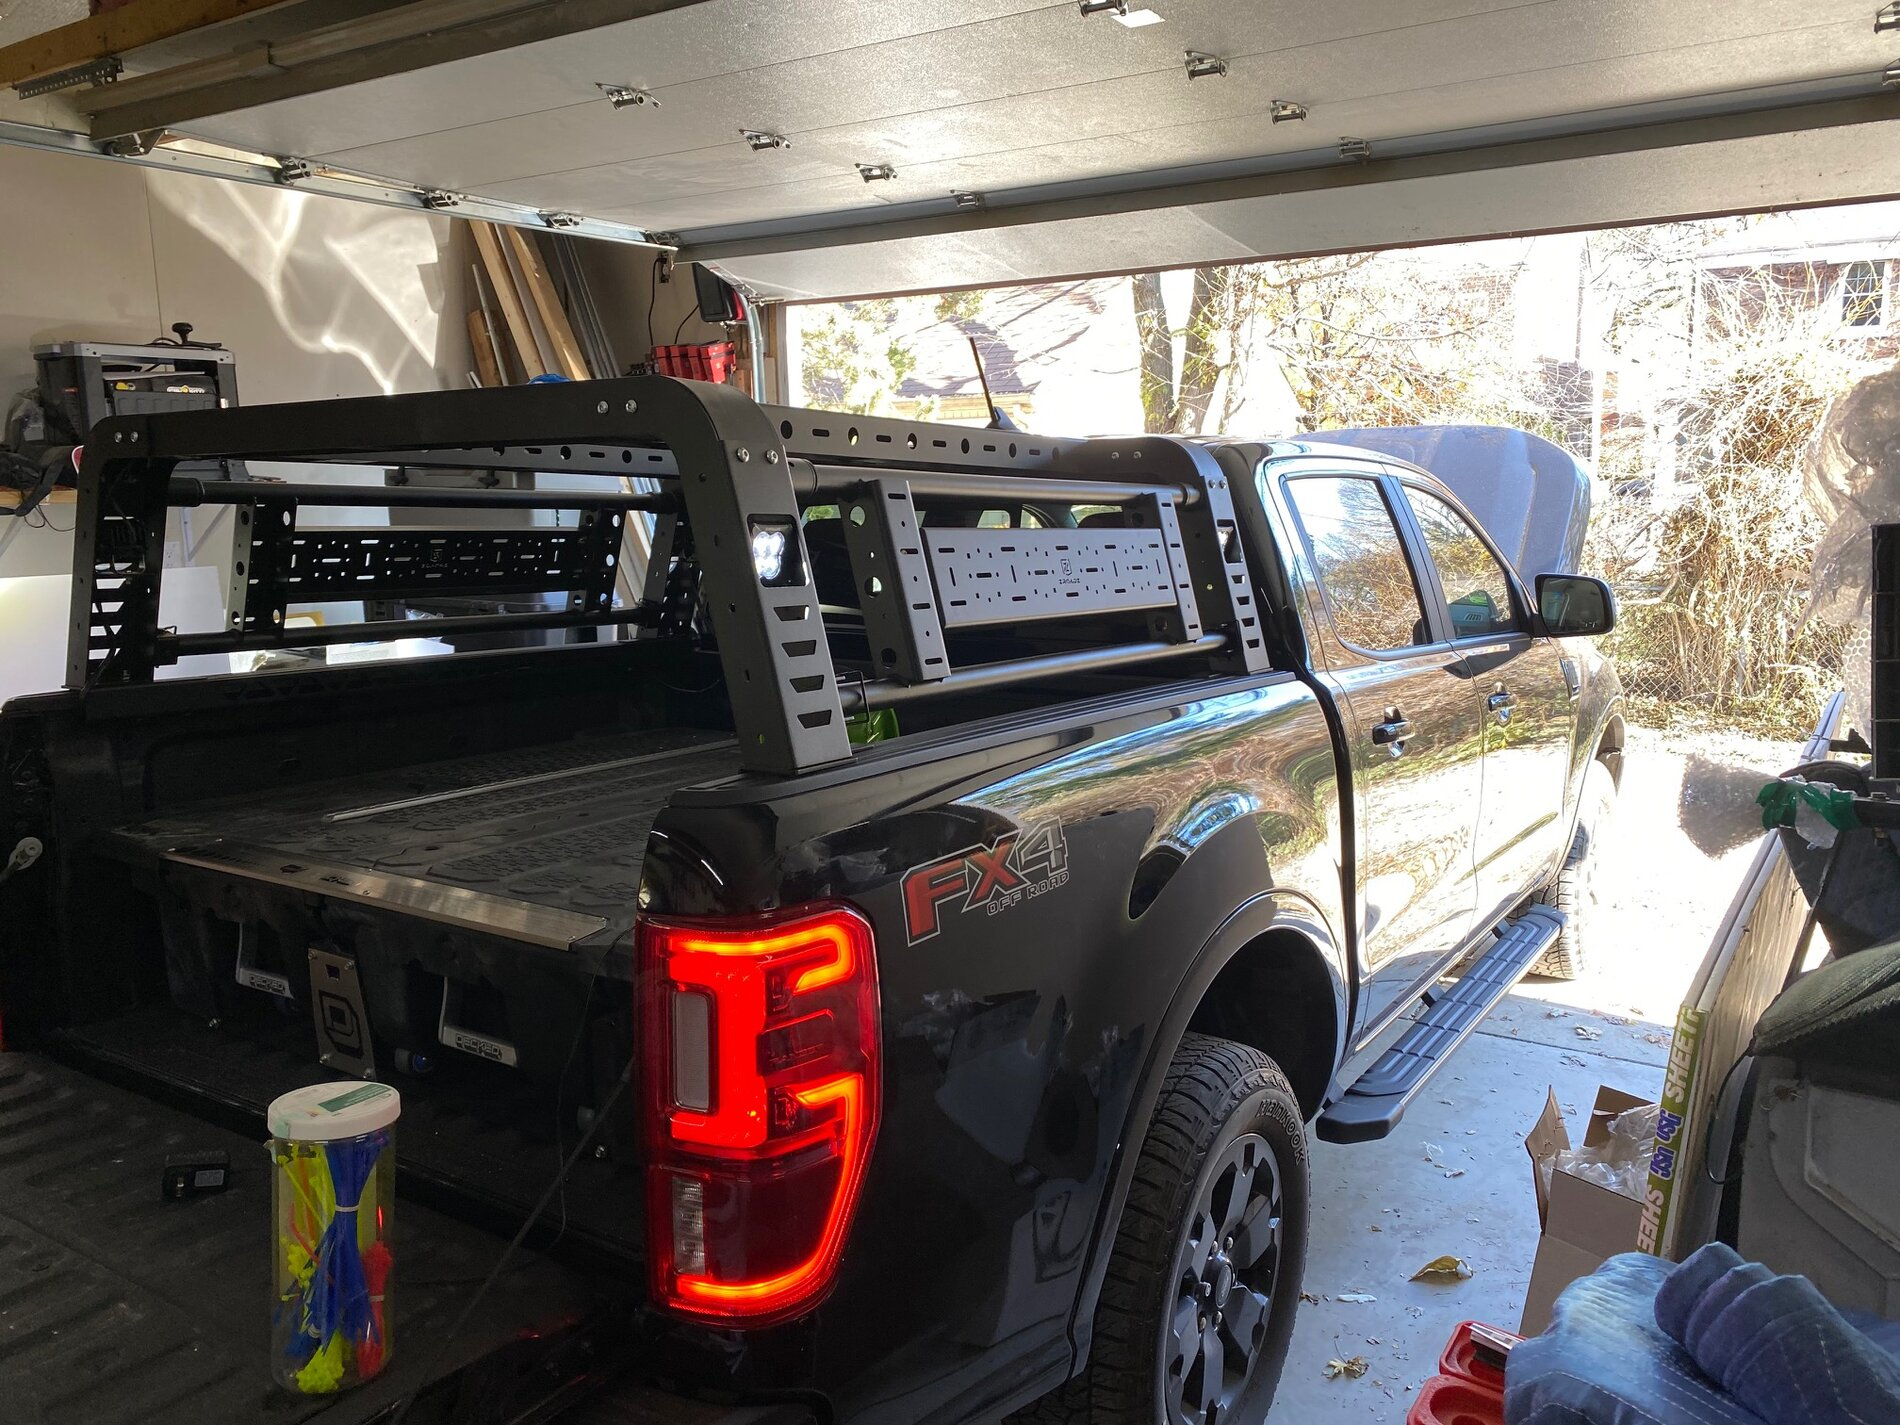 Installed Zroadz Access Overland Rack With Led Pods And Trigger 4 Plus 2019 Ford Ranger And Raptor Forum 5th Generation Ranger5g Com